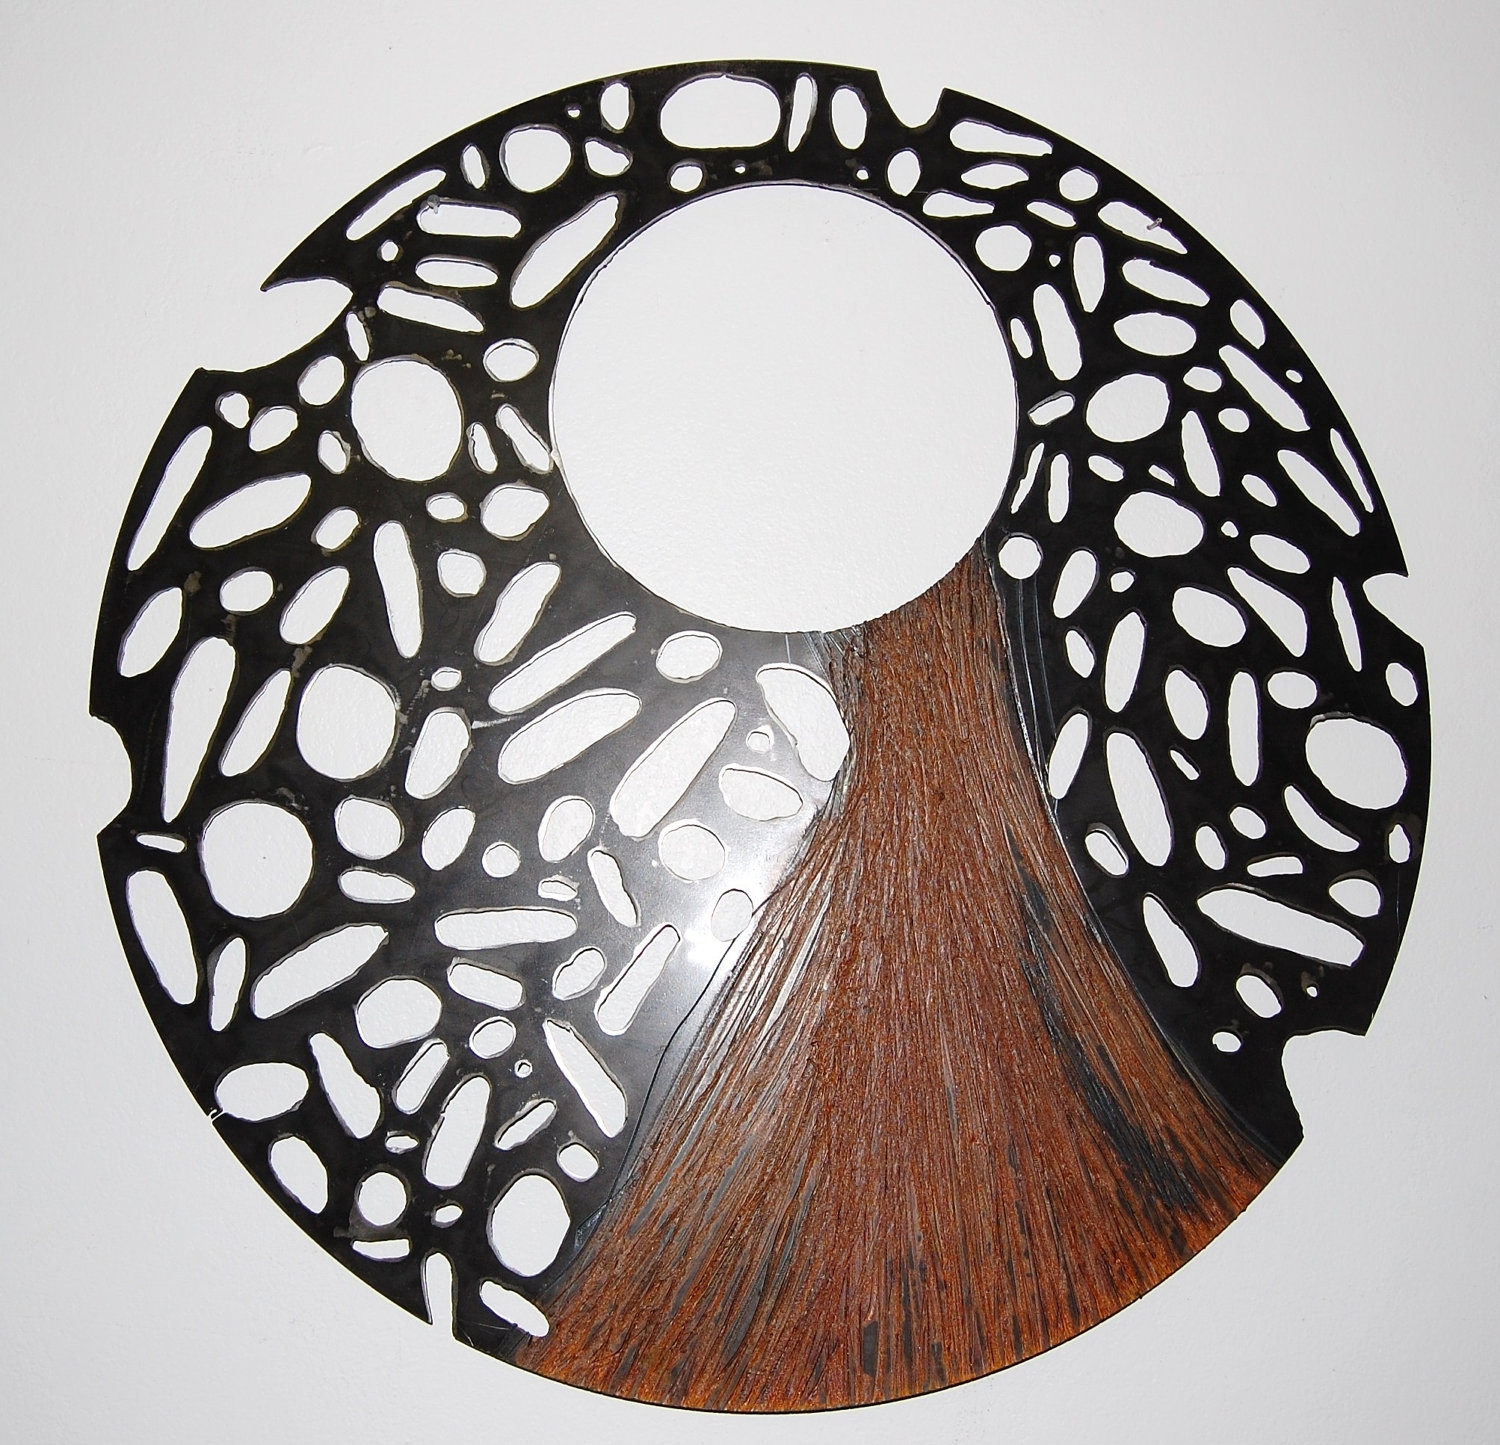 Large Steel Sculpture,recycled Metal Wall Art, Round Perforated With Current Abstract Outdoor Metal Wall Art (View 5 of 14)